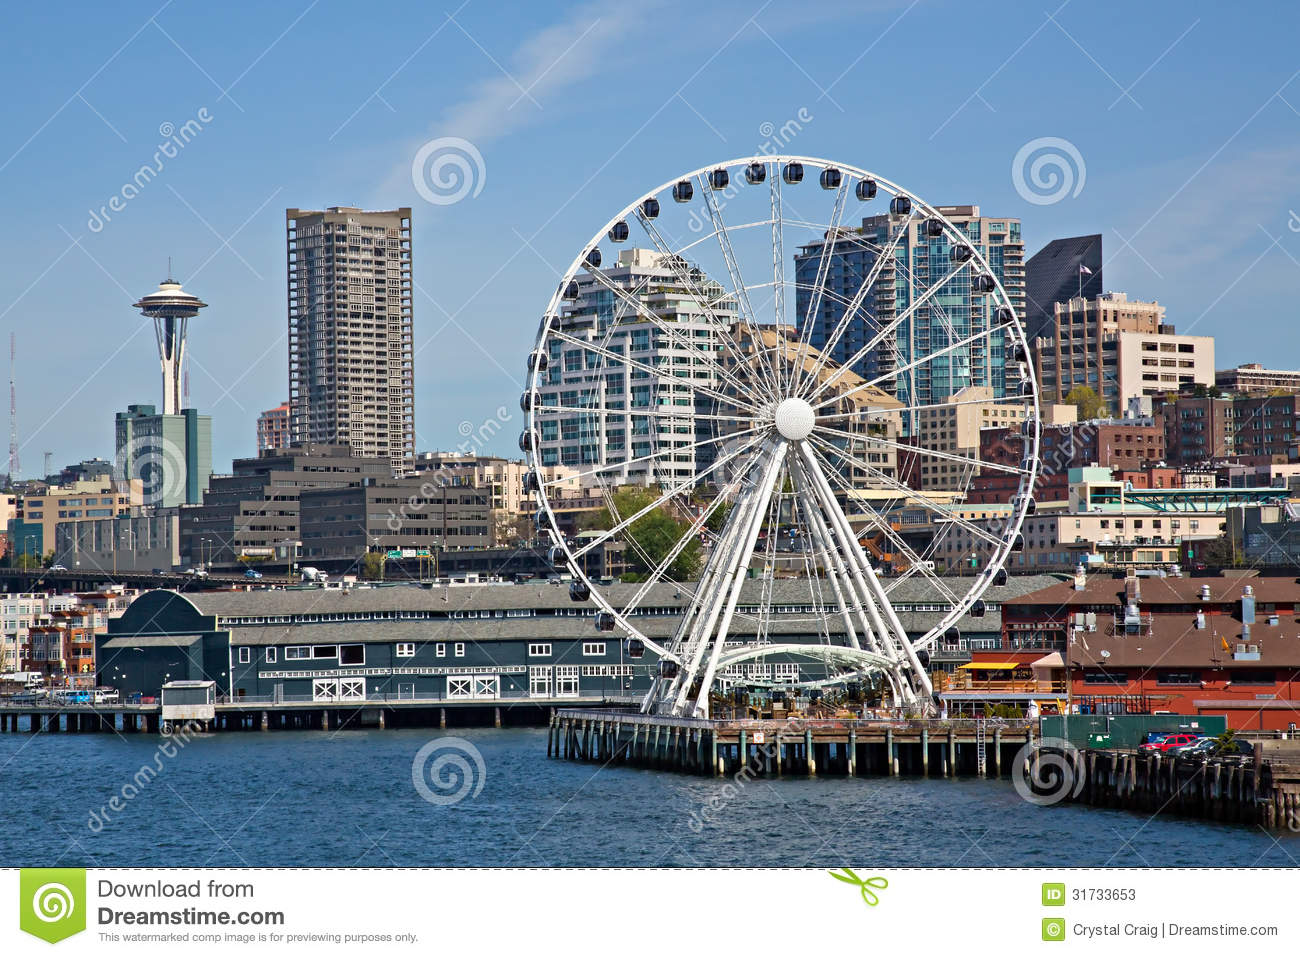 Downtown Seattle Waterfront and the Great Wheel